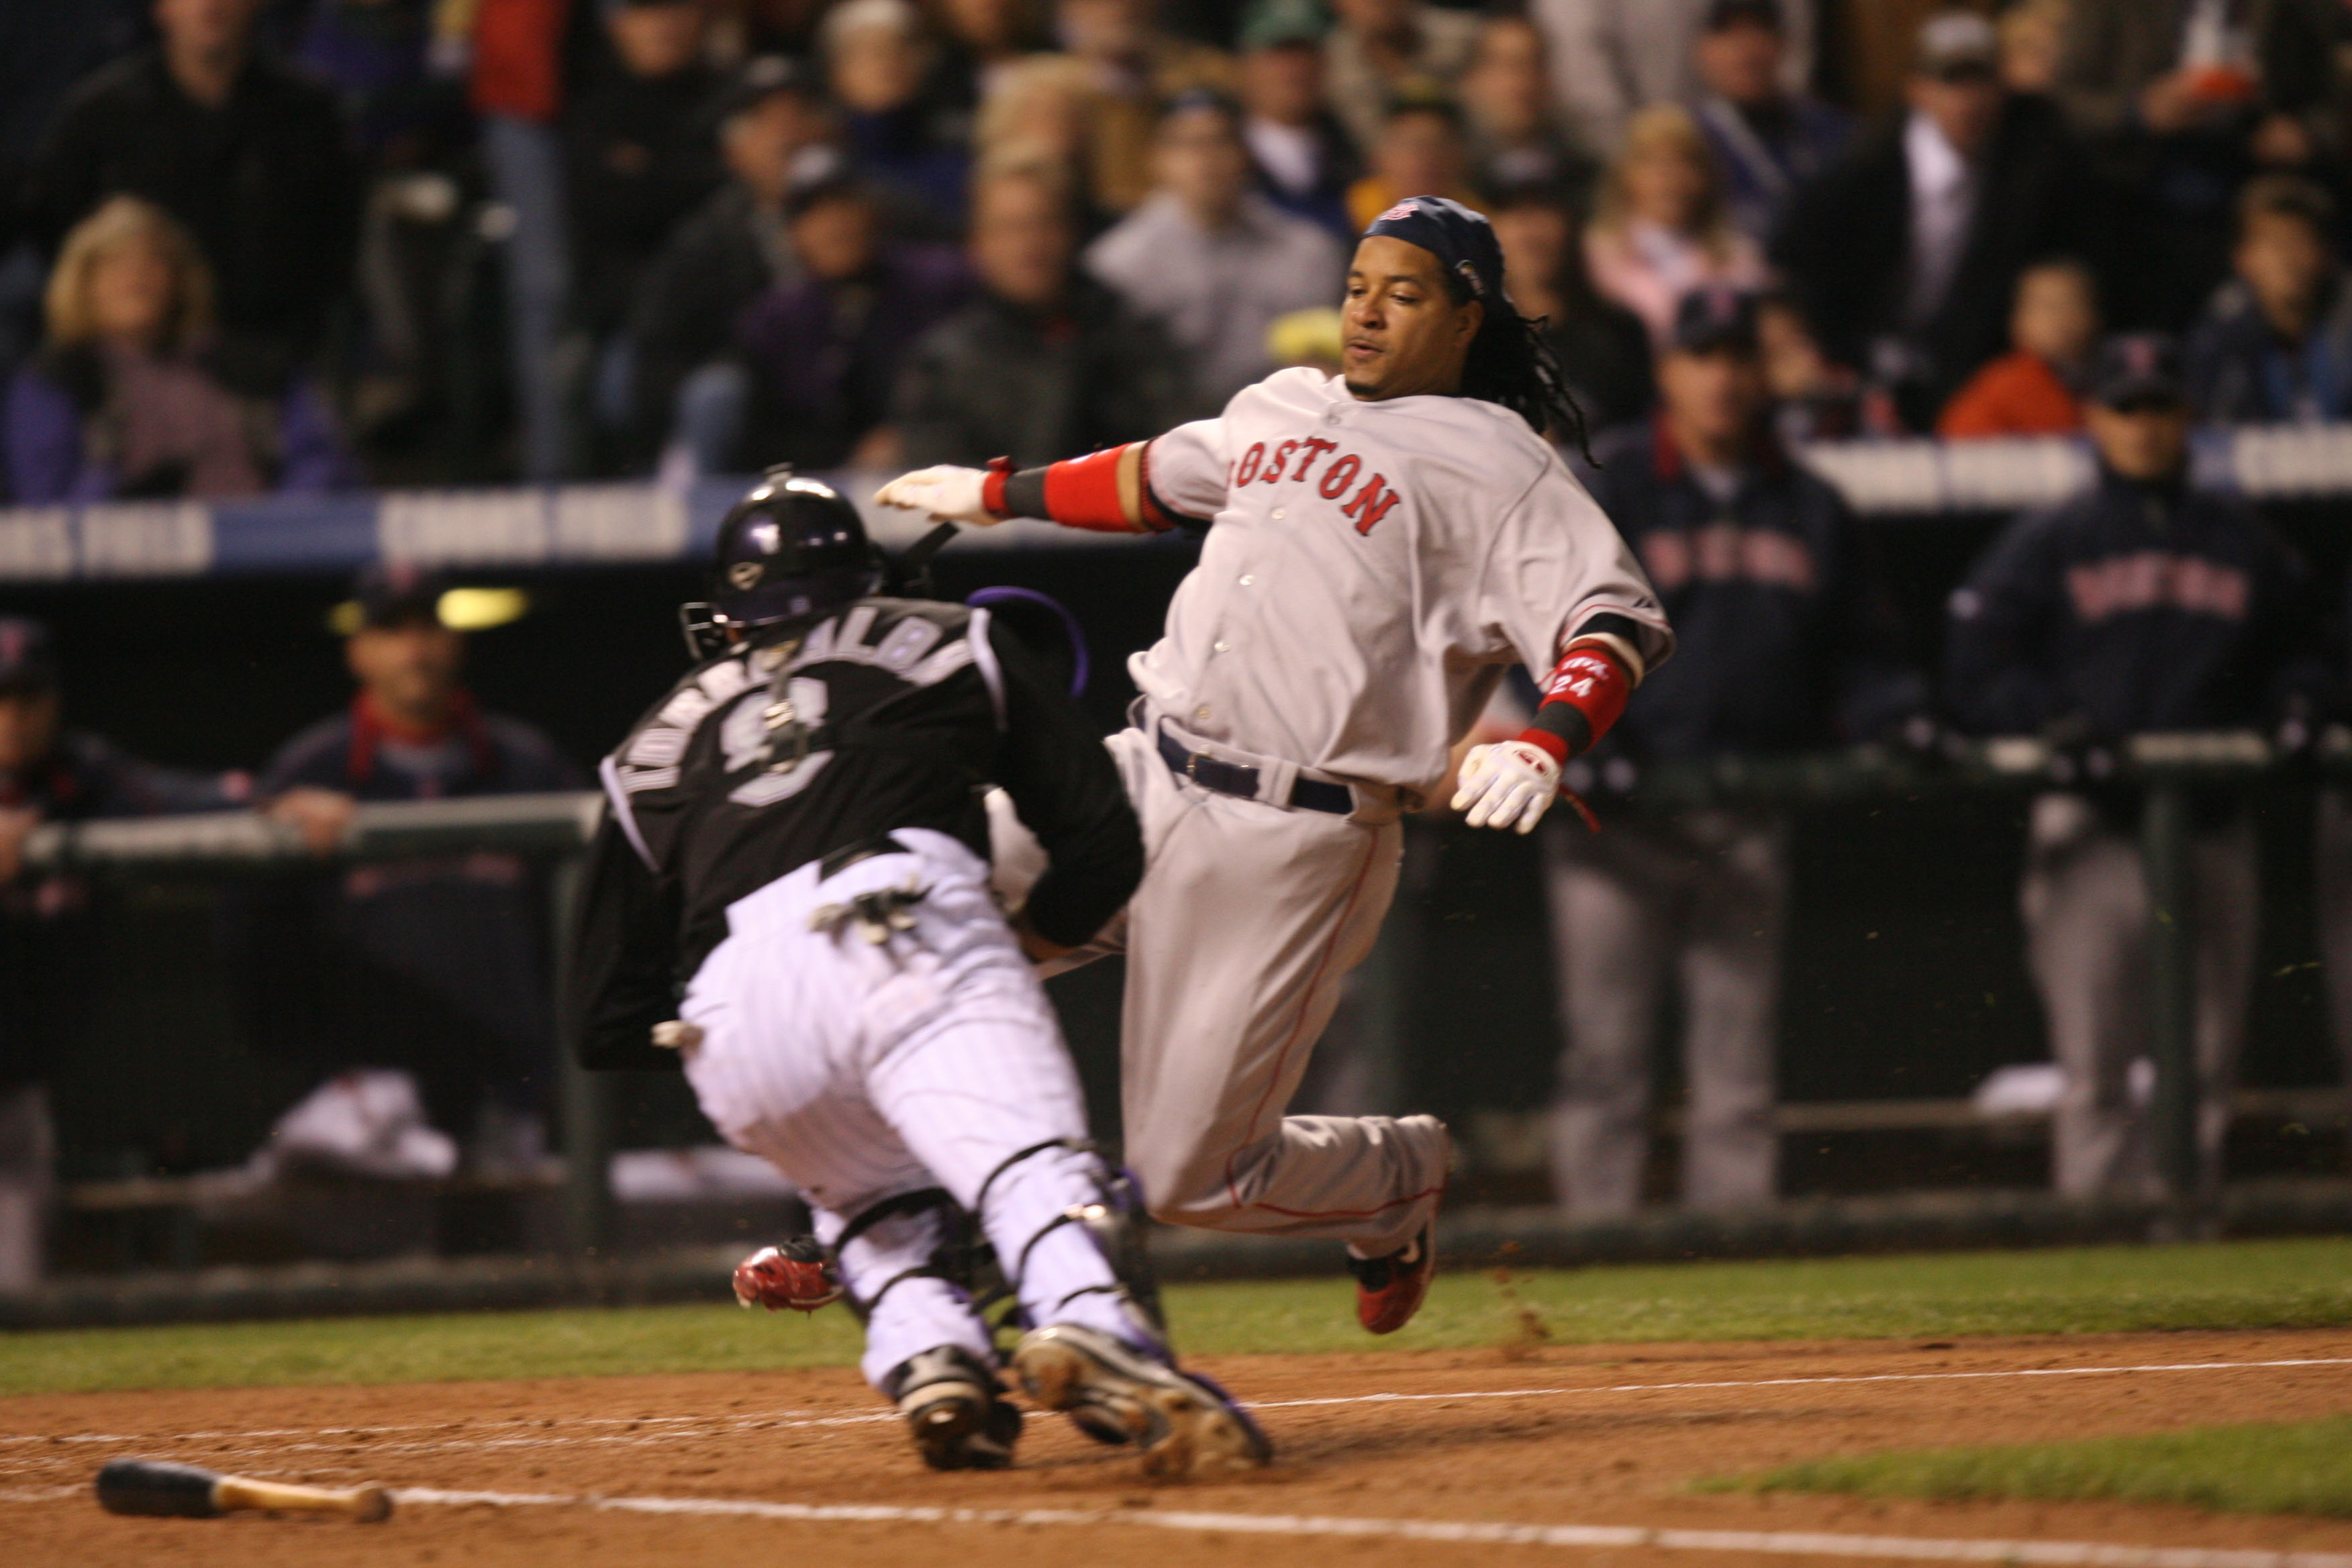 Manny Ramirez was blown off by a so-called Red Sox fan.